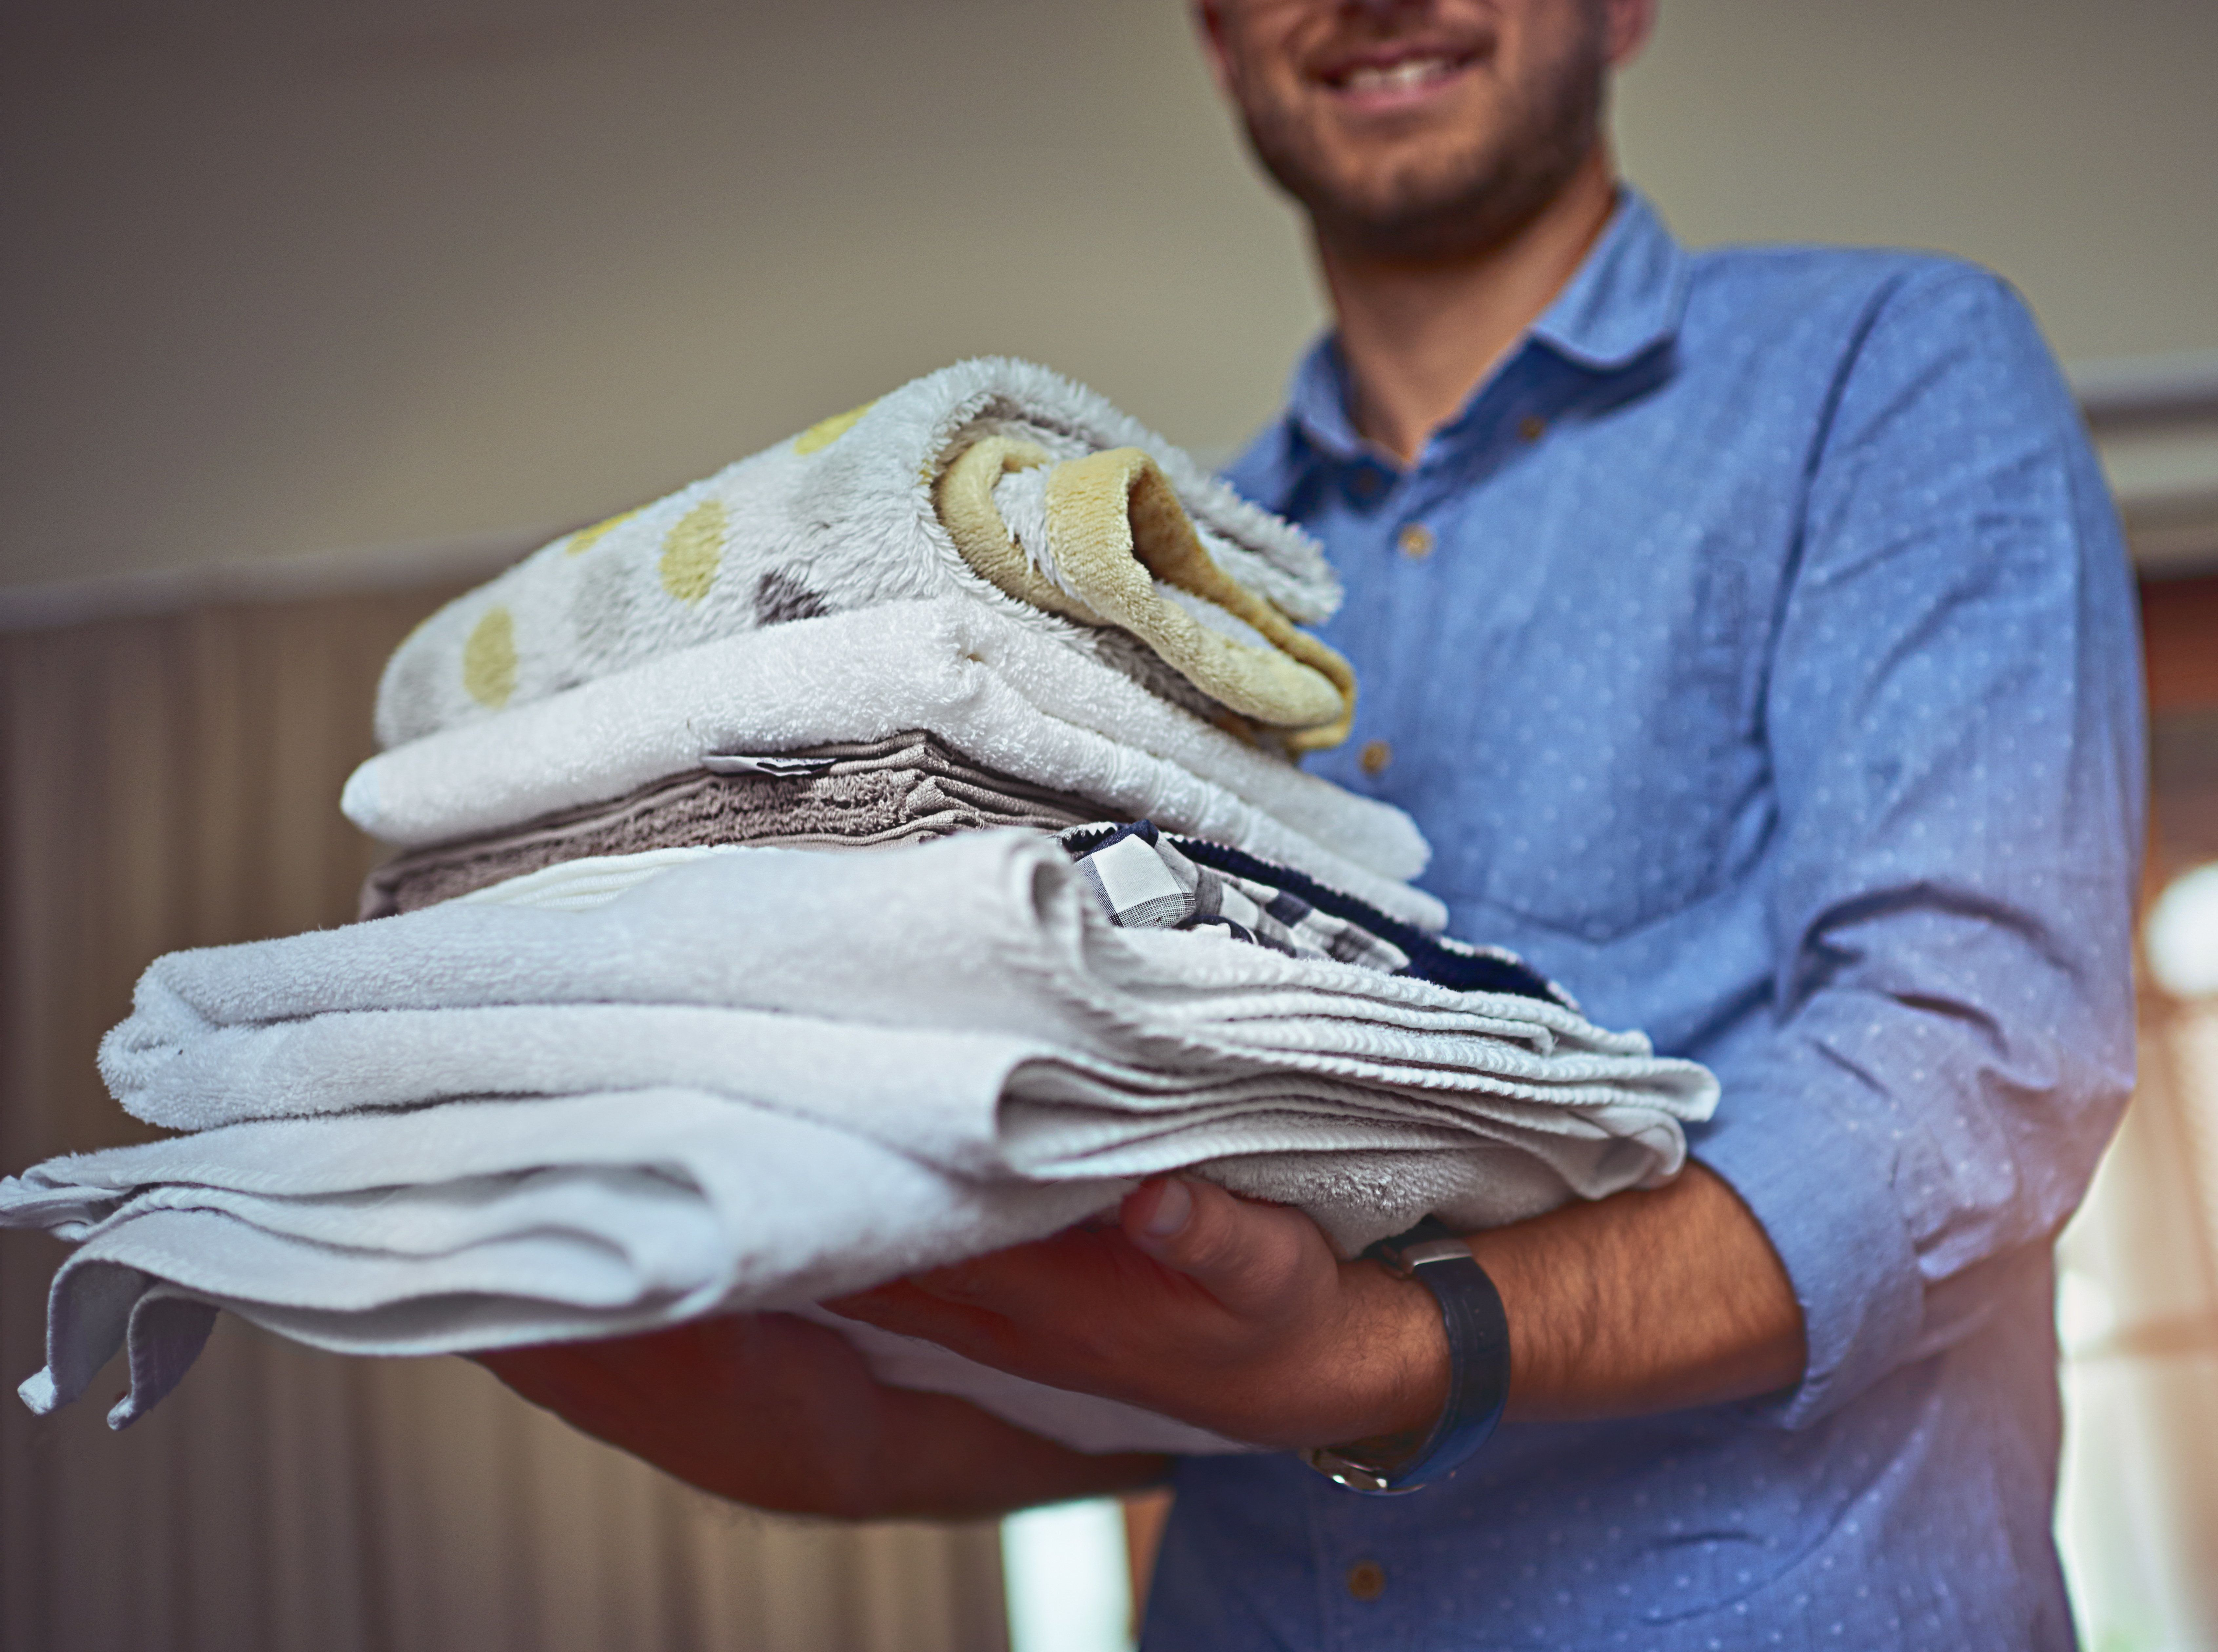 Cropped shot of a young man holding a load of freshly folded clean laundry